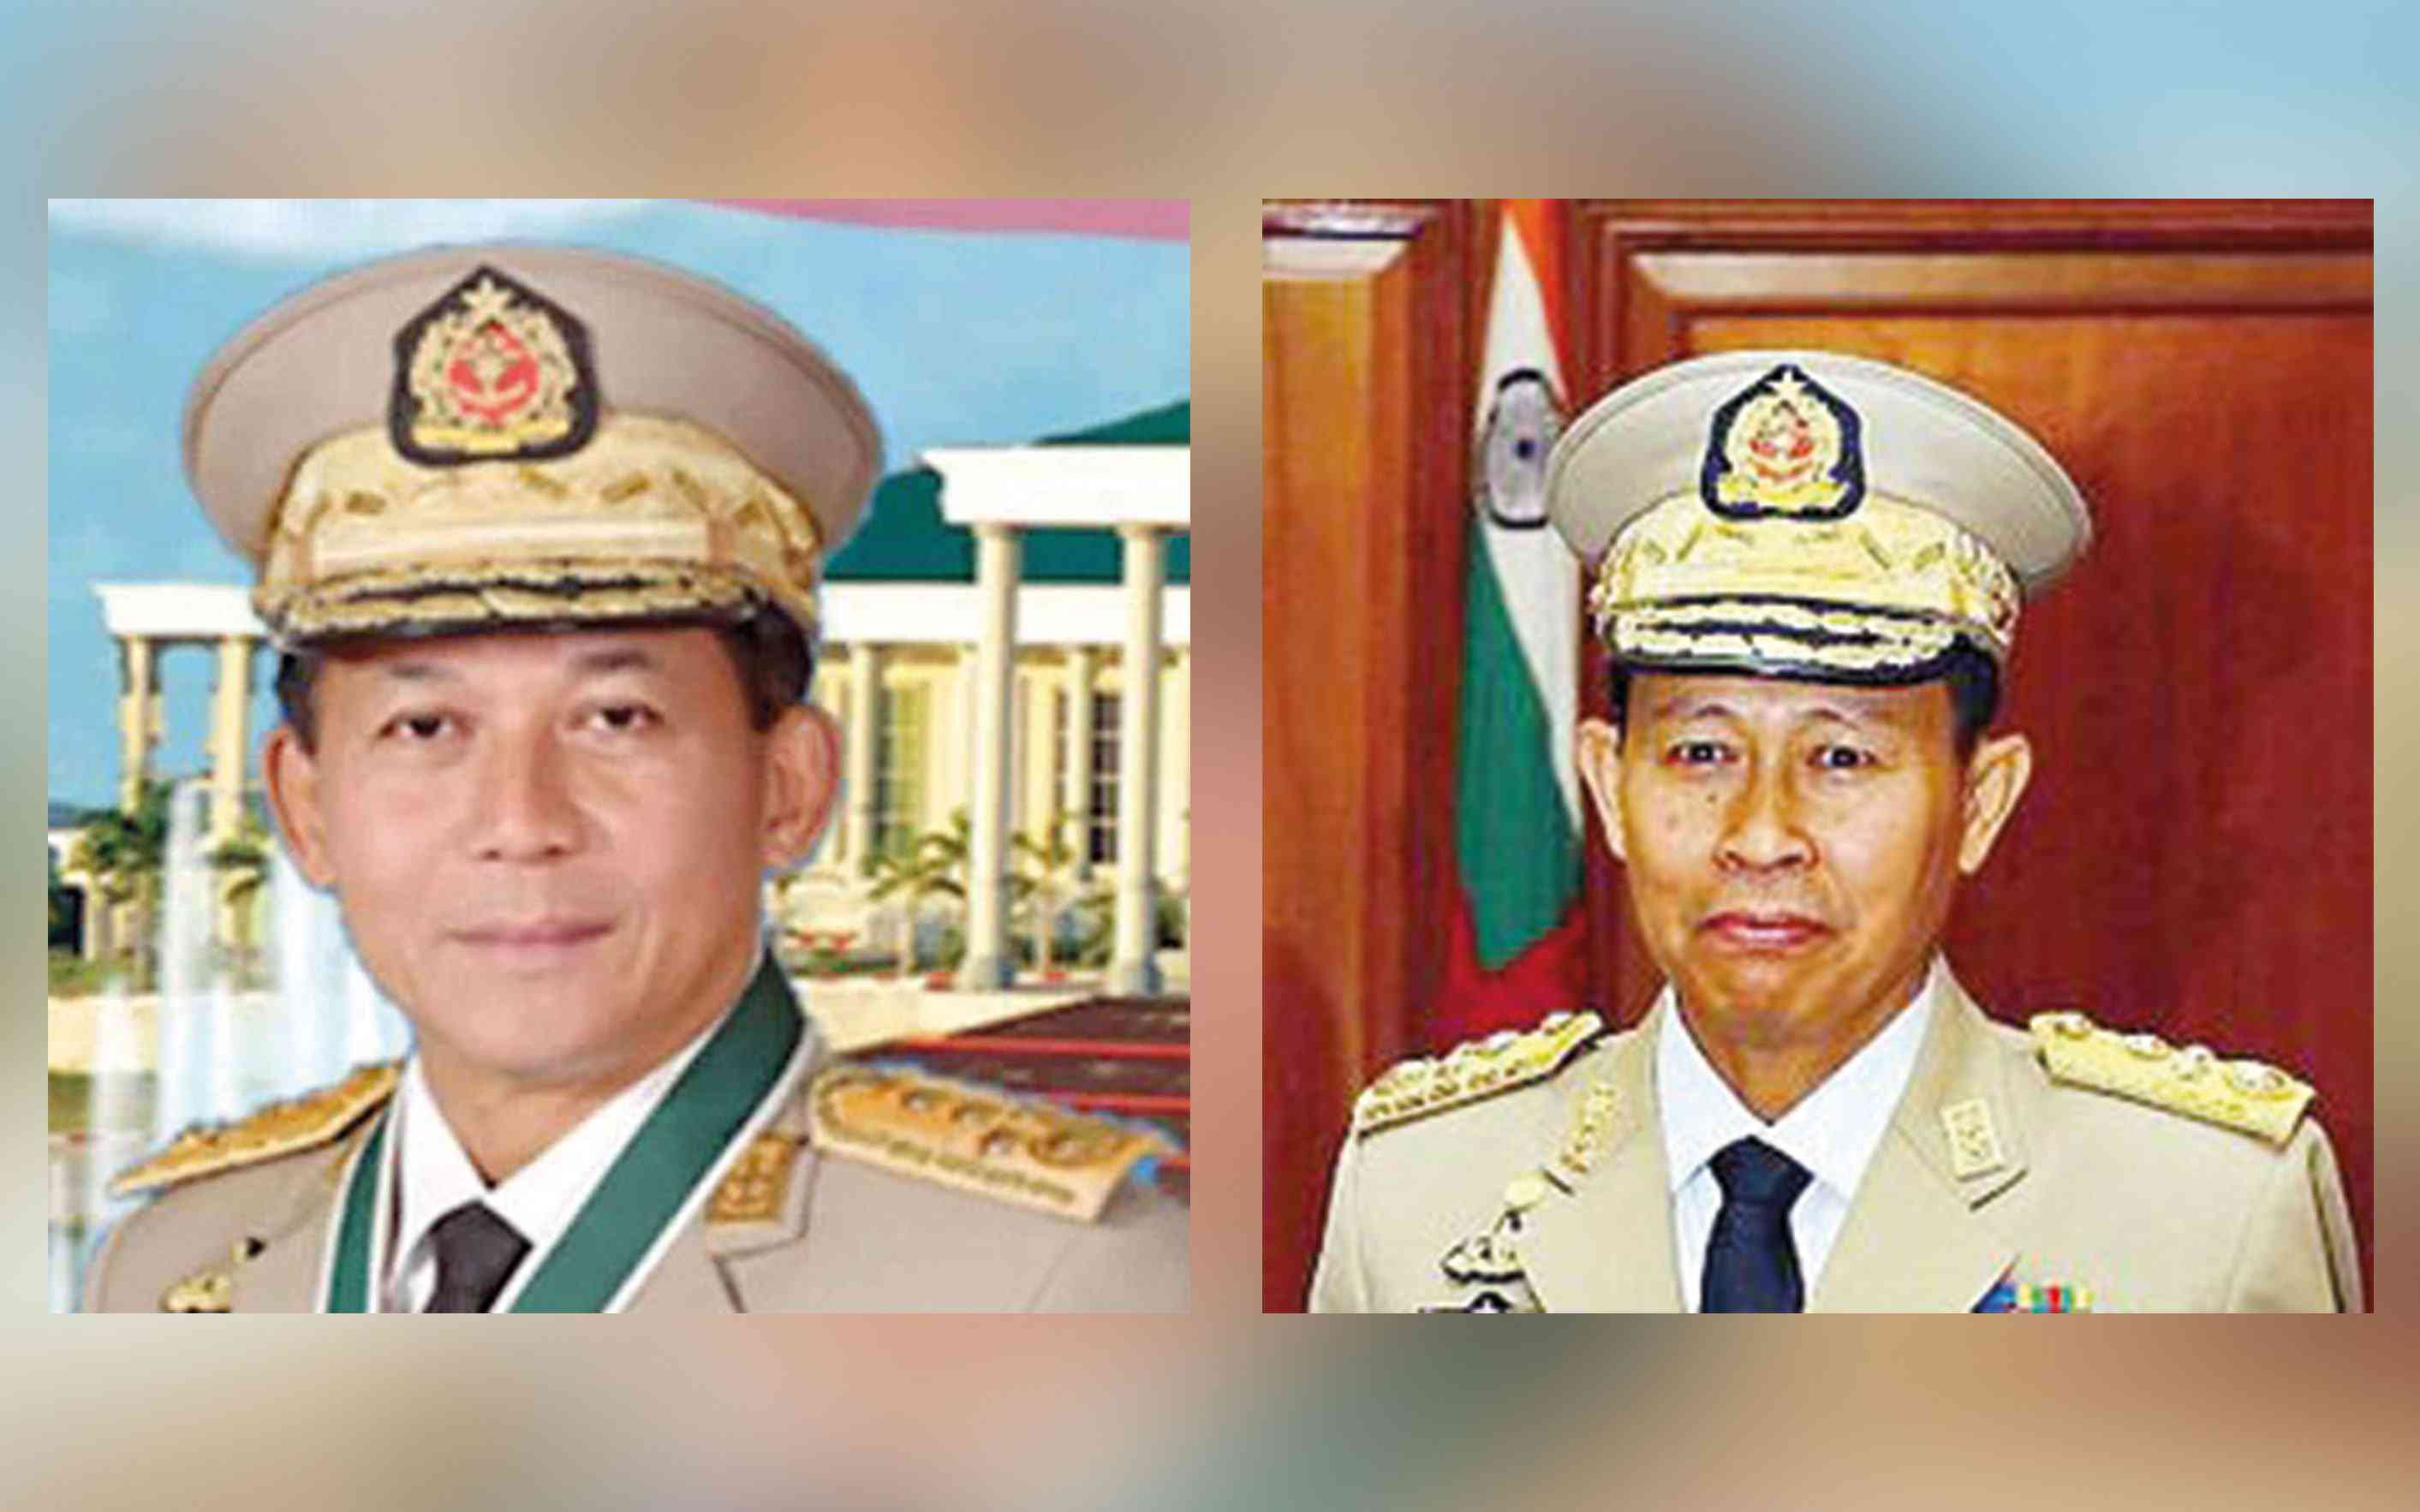 Senior General Min Aung Hlaing, left, and Vice Senior General Soe Win. Photo credit: Wikimedia Commons